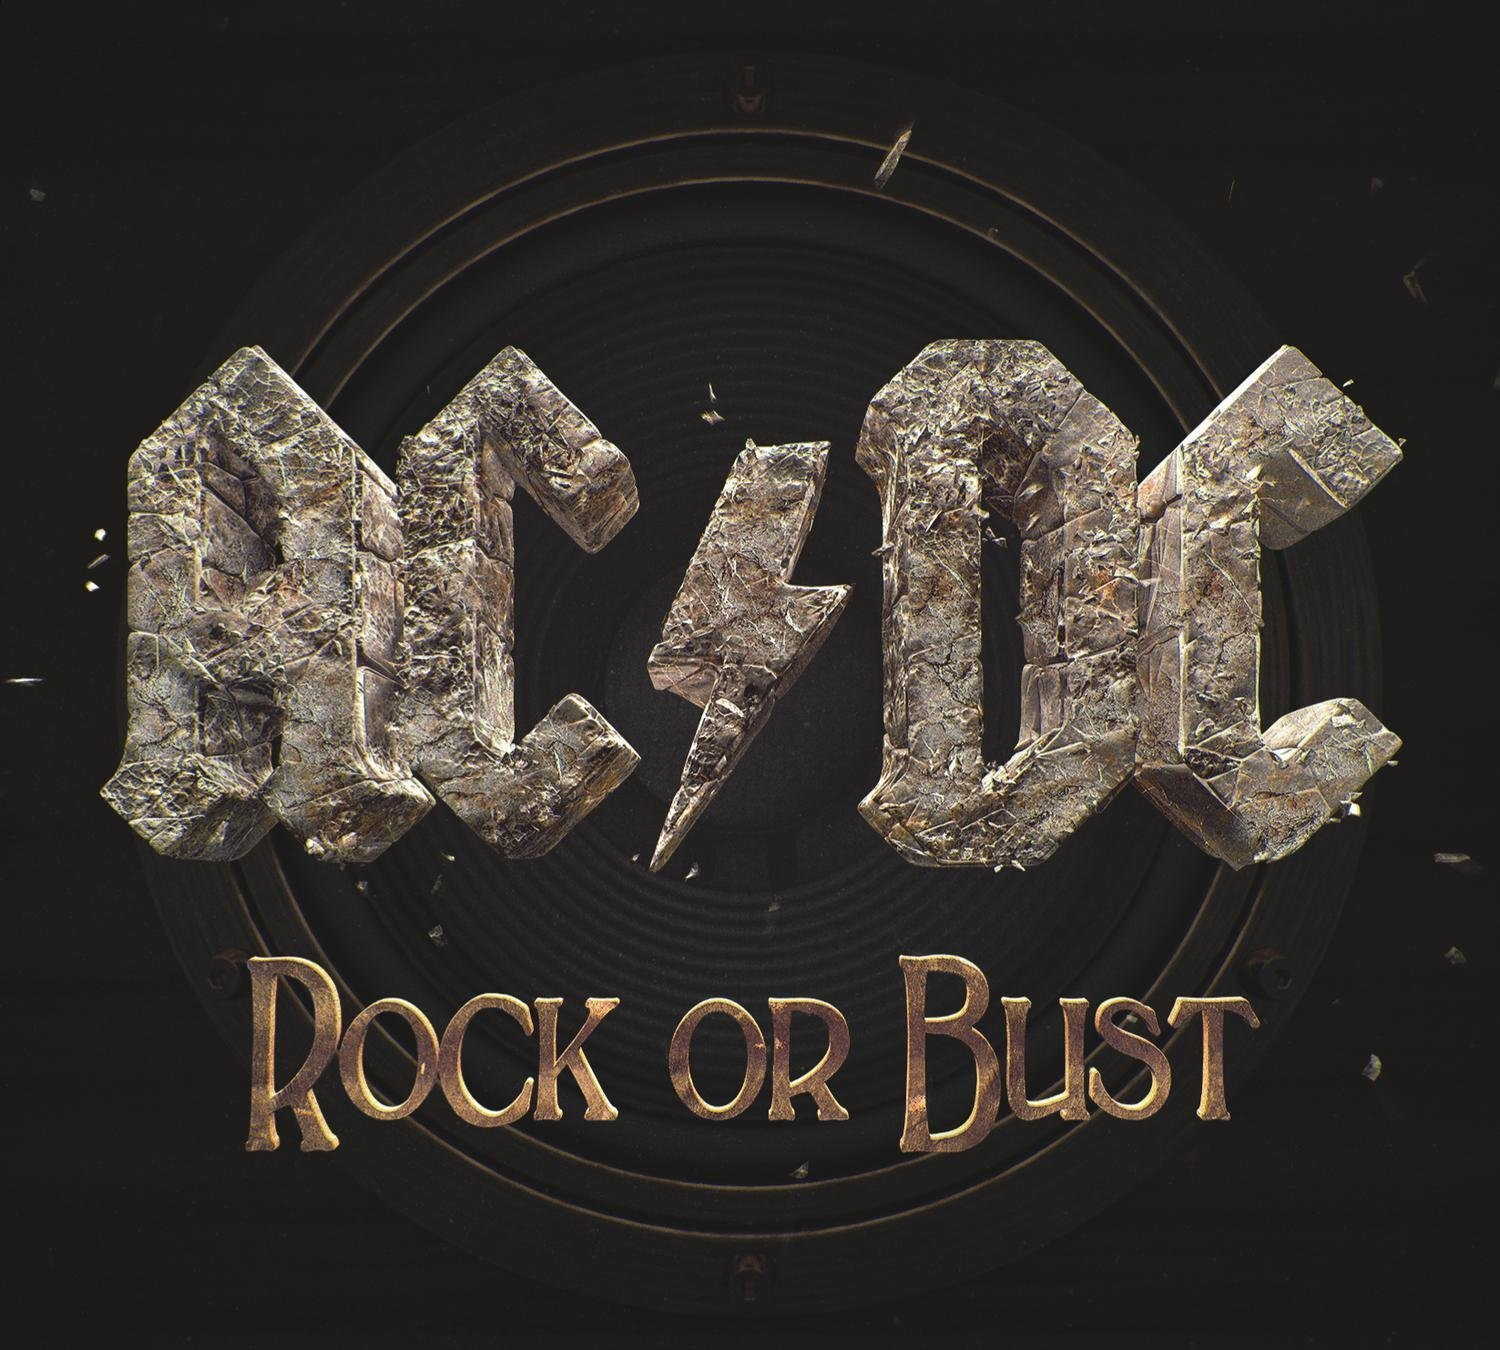 Rock or Bust by AC/DC image